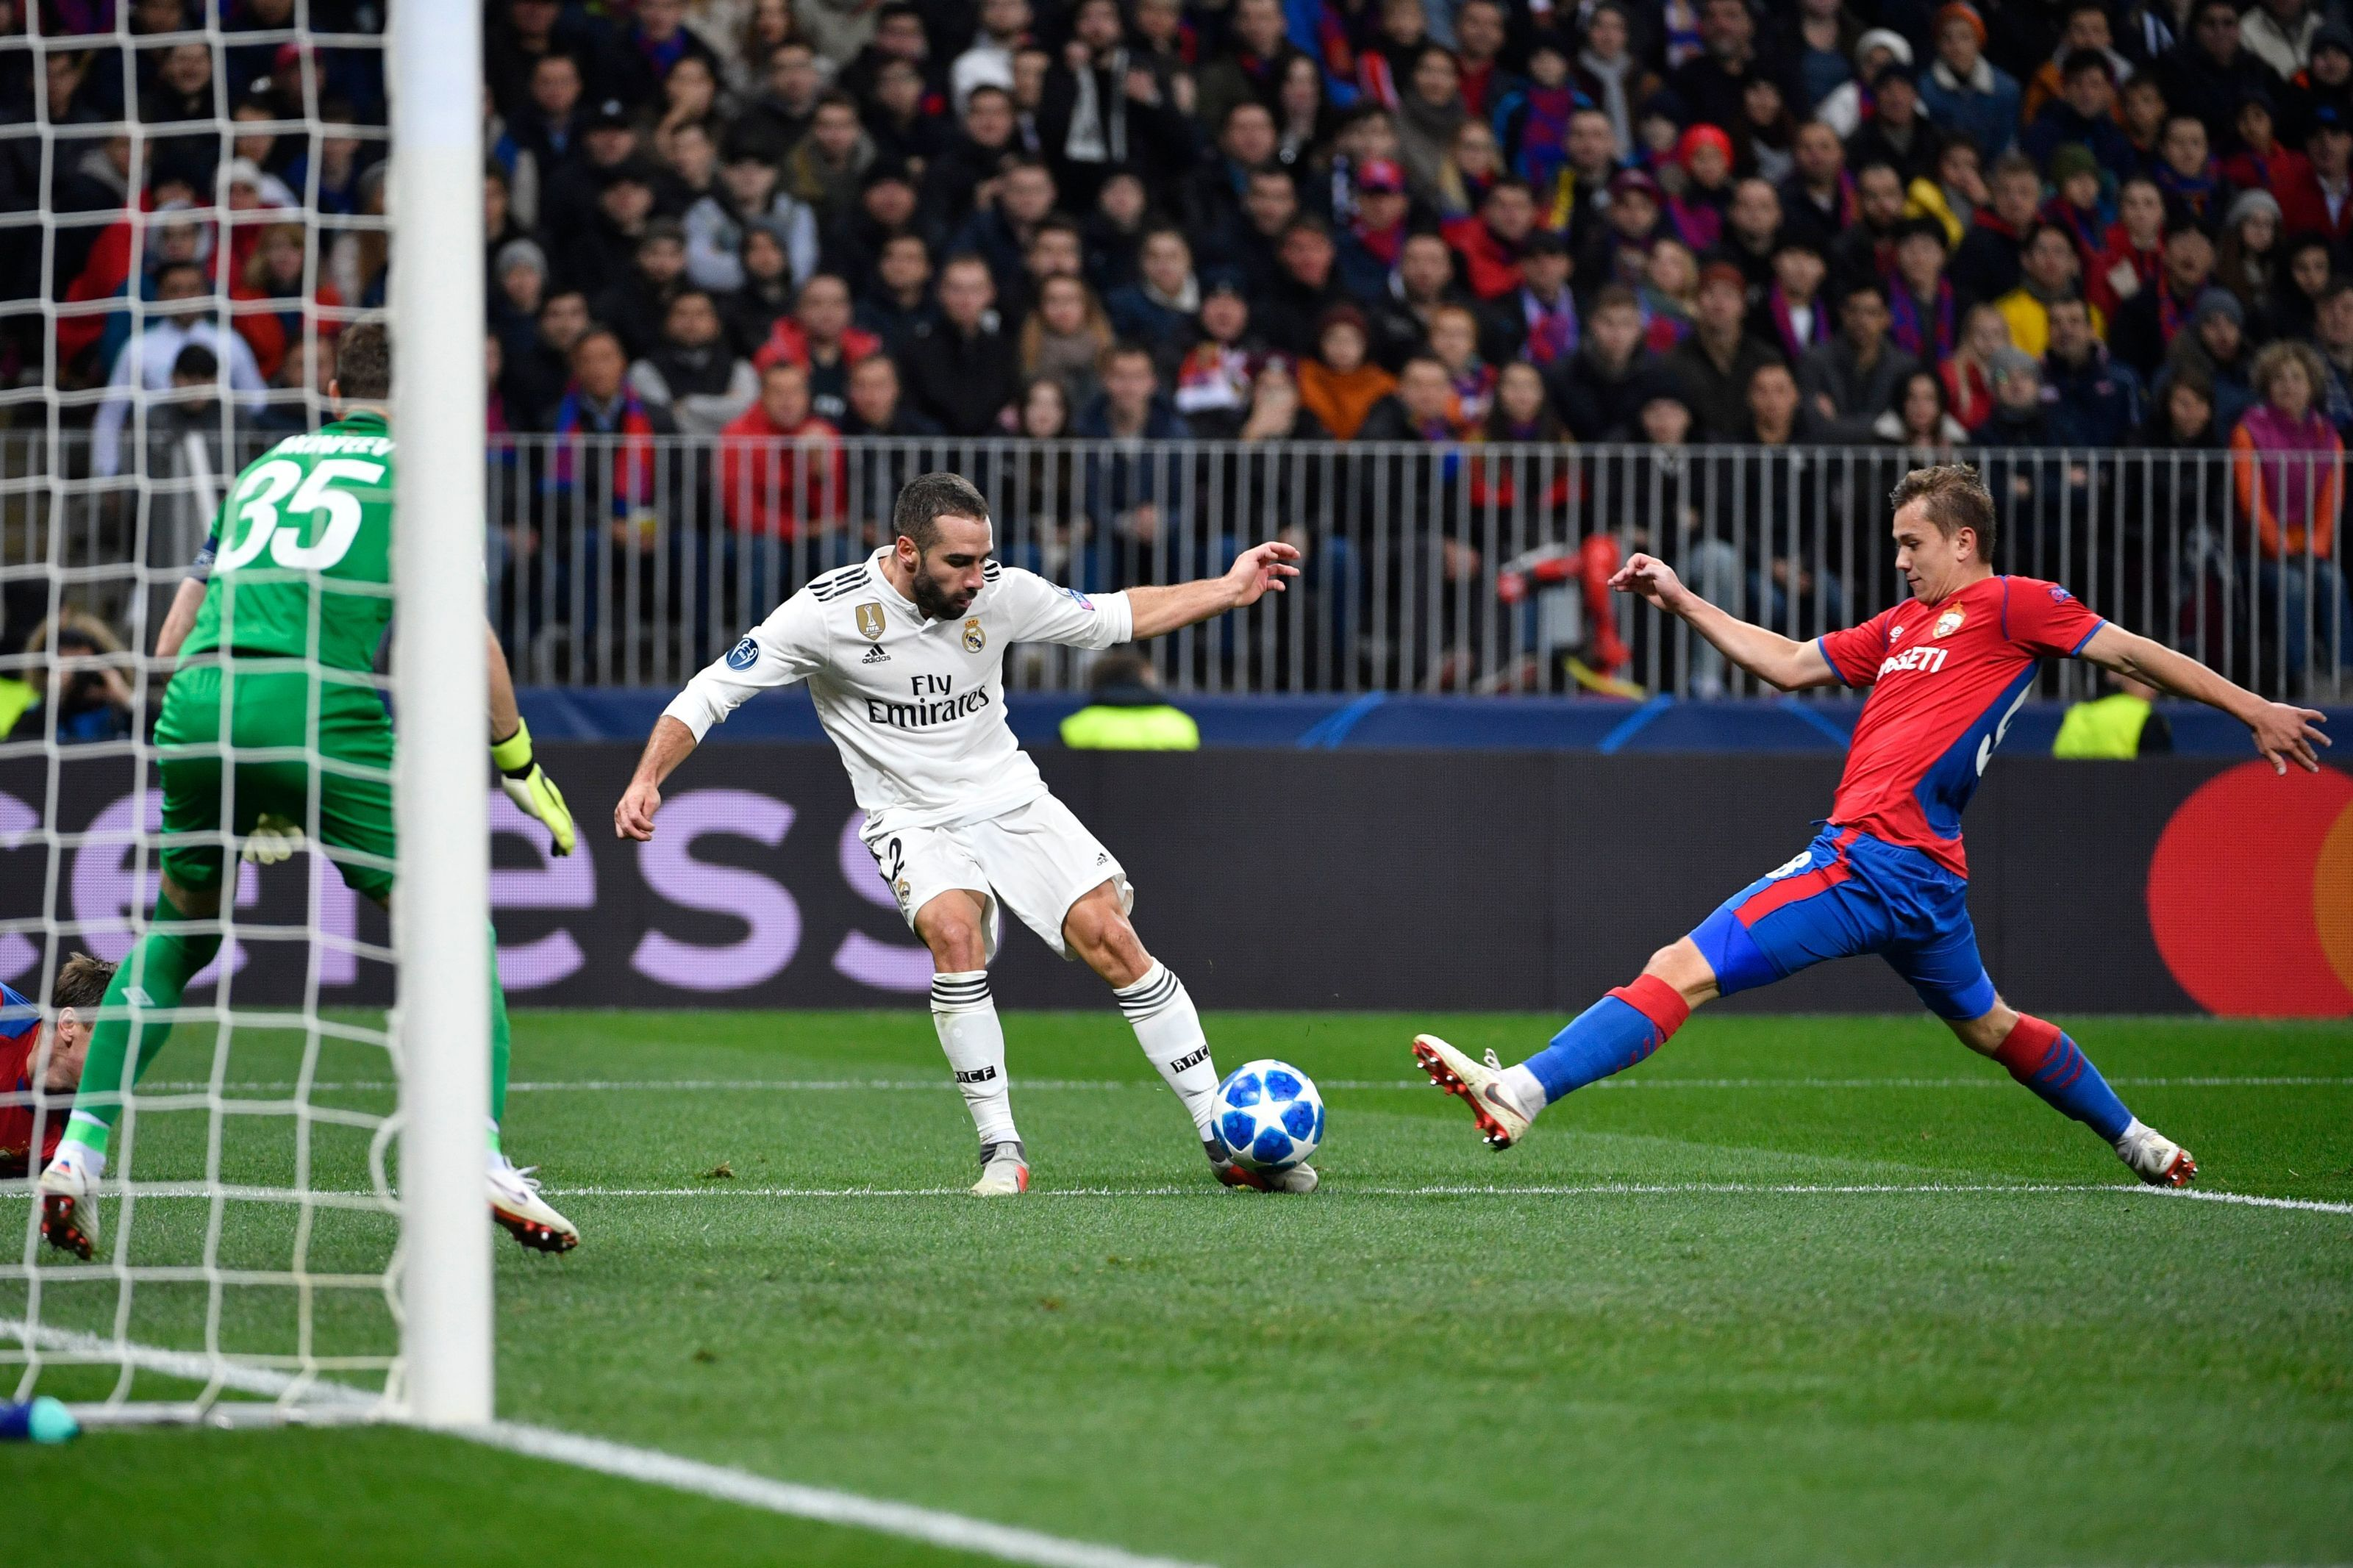 Real Madrid: Dani Carvajal limps off in loss to CSKA Moscow